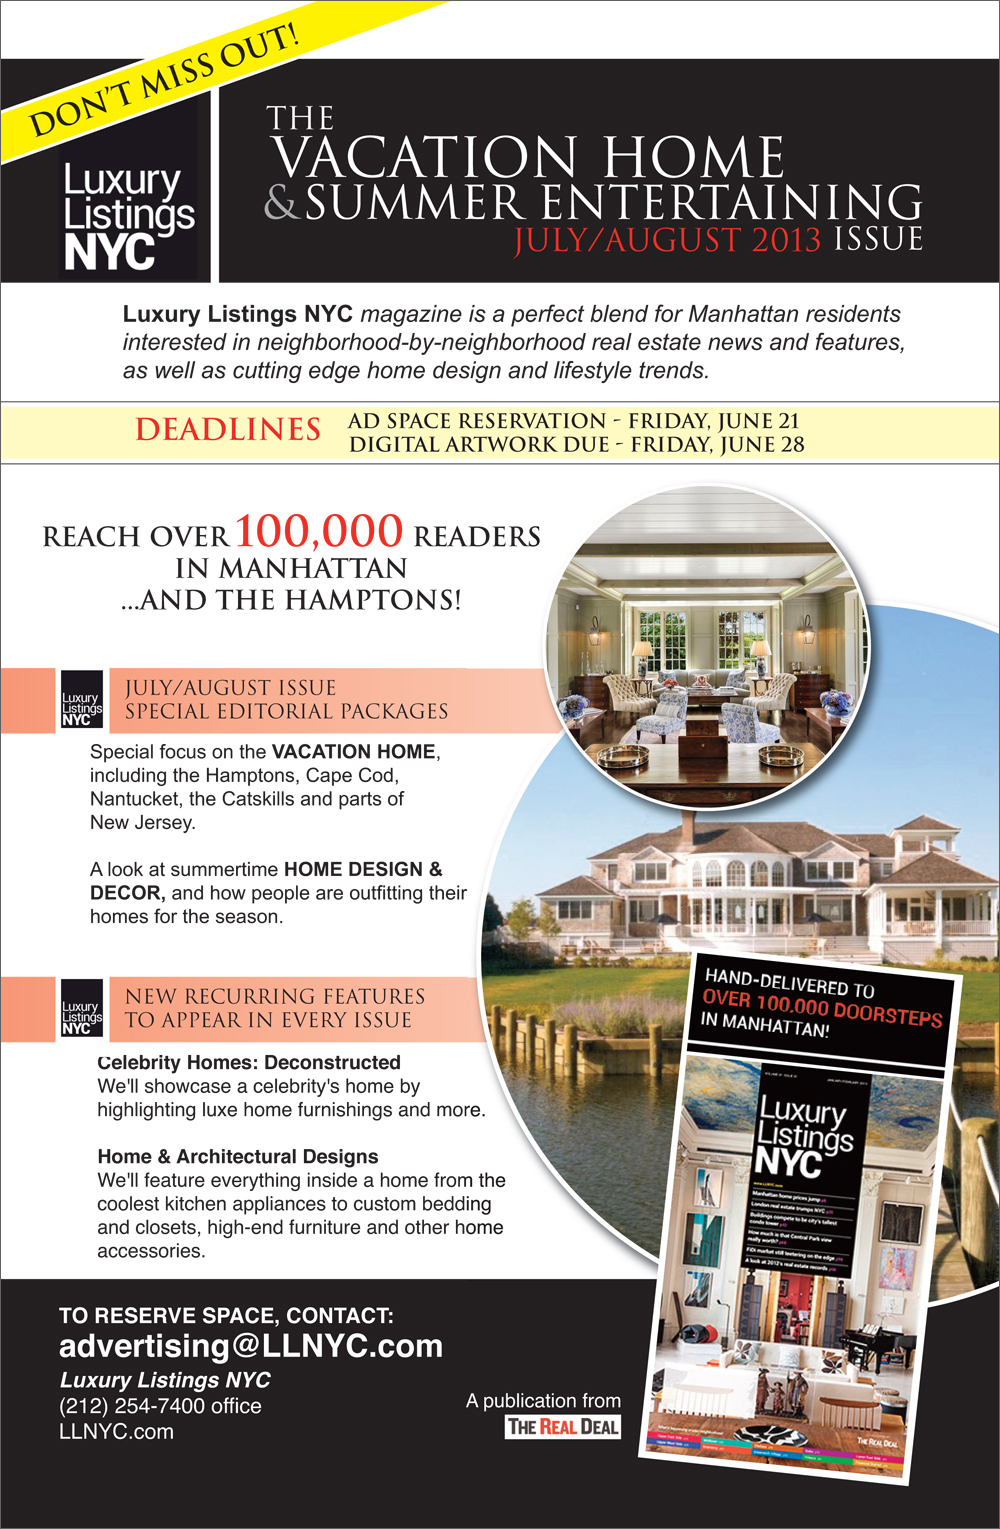 LLNYC July August 2013  sc 1 st  The Real Deal & The Real Deal | Donu0027t miss Luxury Listings NYCu0027s July/August issue